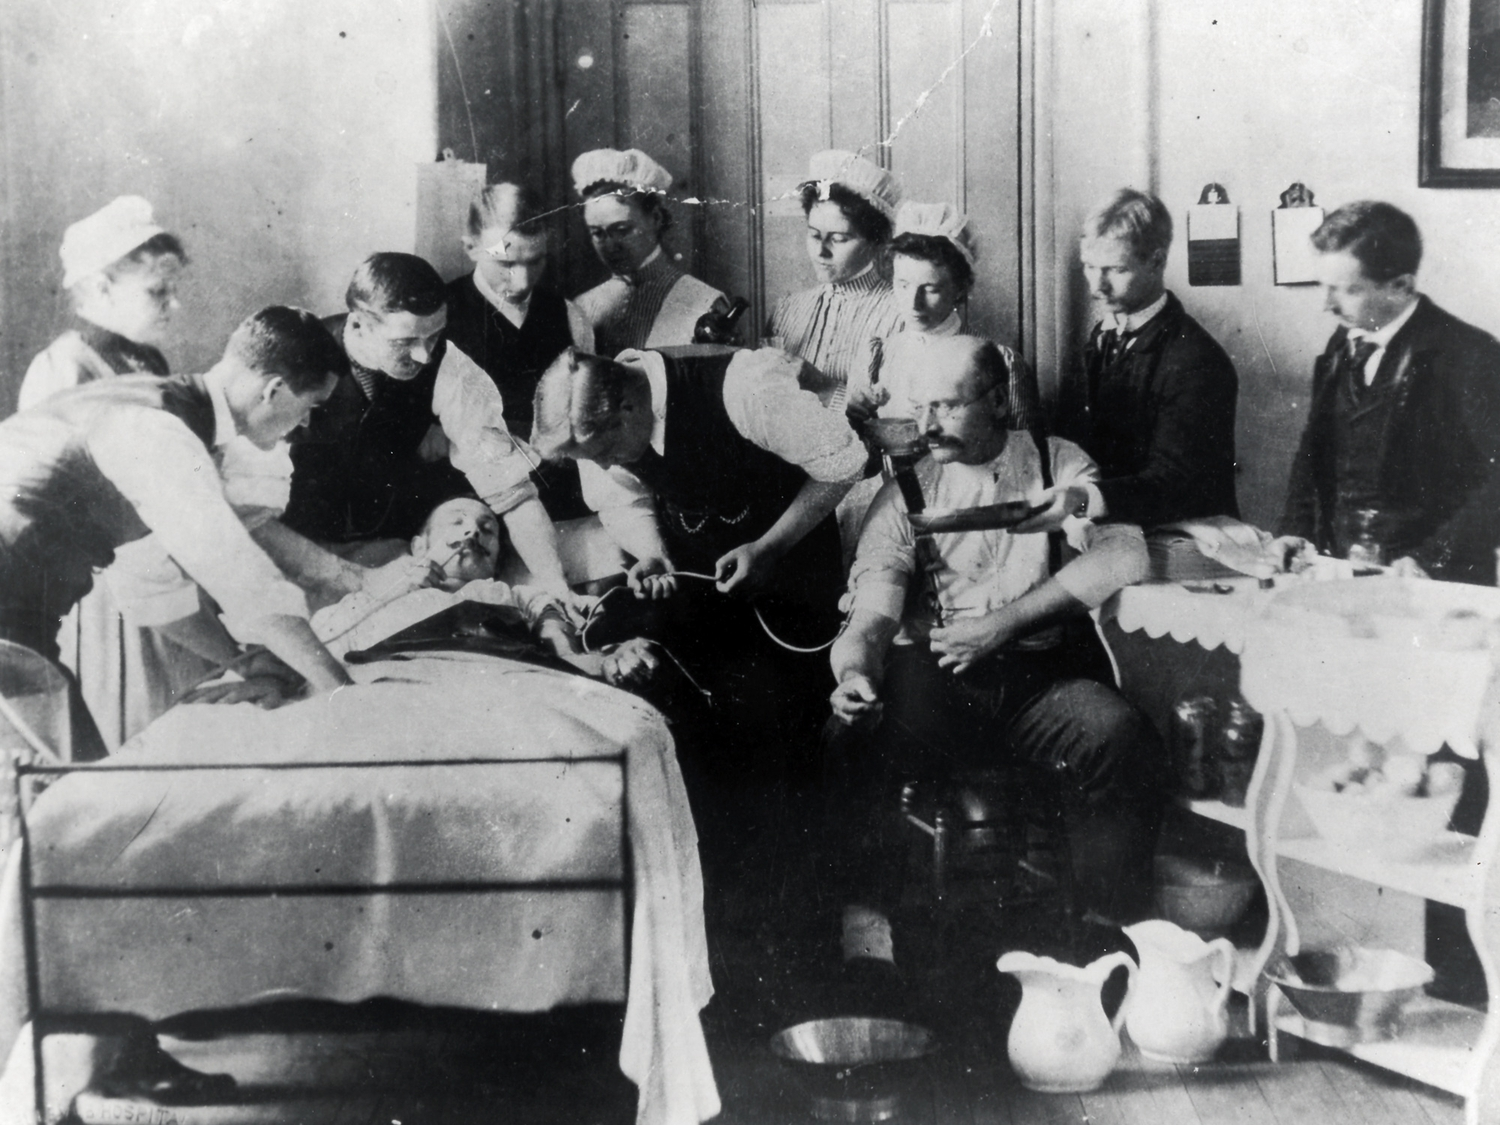 In 1876, O.G. Mason, Bellevue's official photographer, took a carefully staged photograph of a blood transfusion in progress.